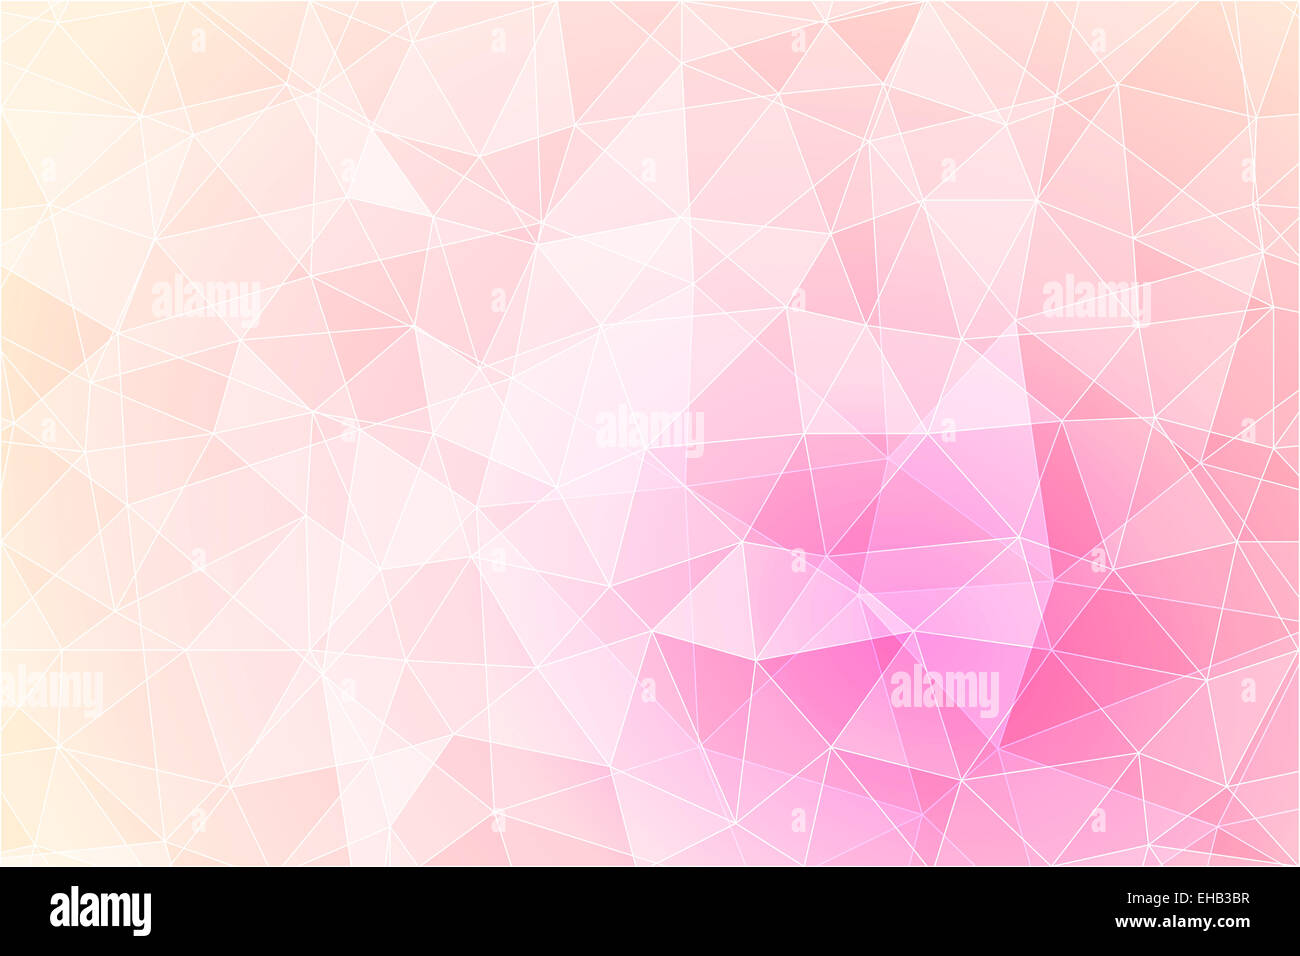 Abstract geometric pink background with triangular polygons, low poly style illustration - Stock Image